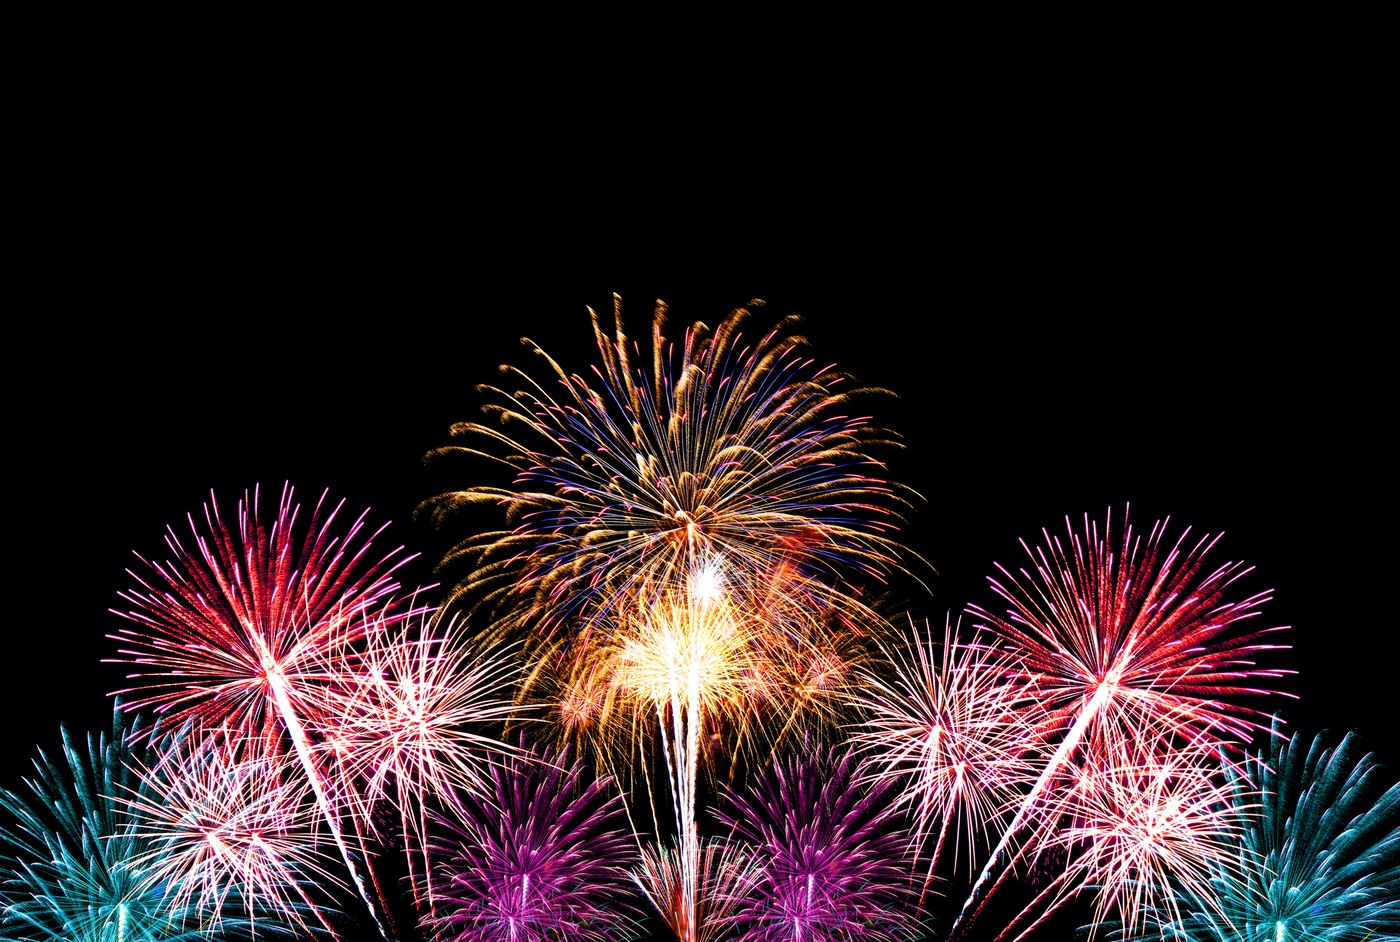 https://tickertapecdn.tdameritrade.com/assets/images/pages/md/Fireworks: Stock market winners and losers from 2019